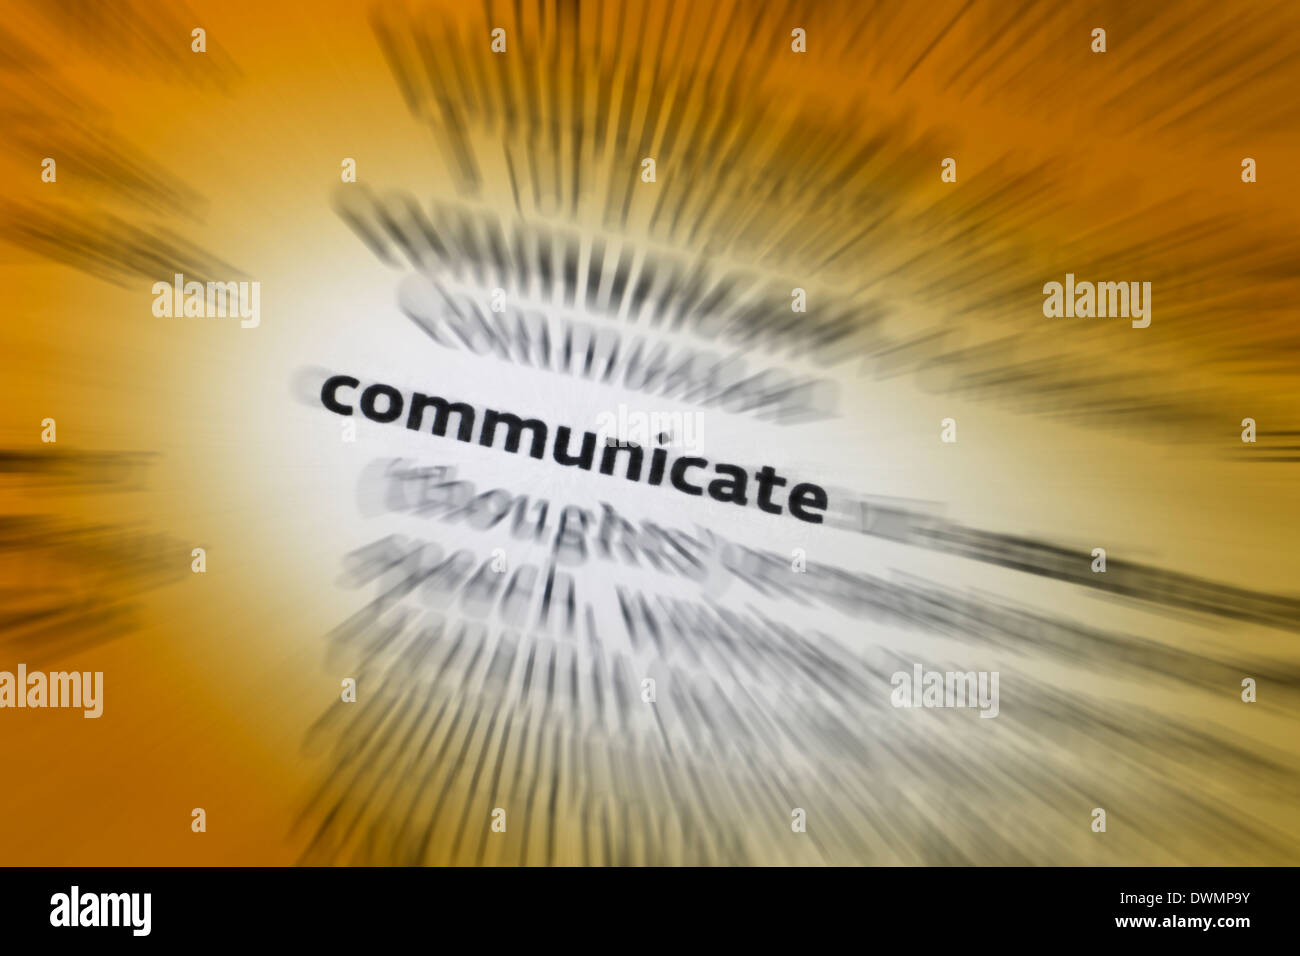 Communicate - Communication - Stock Image